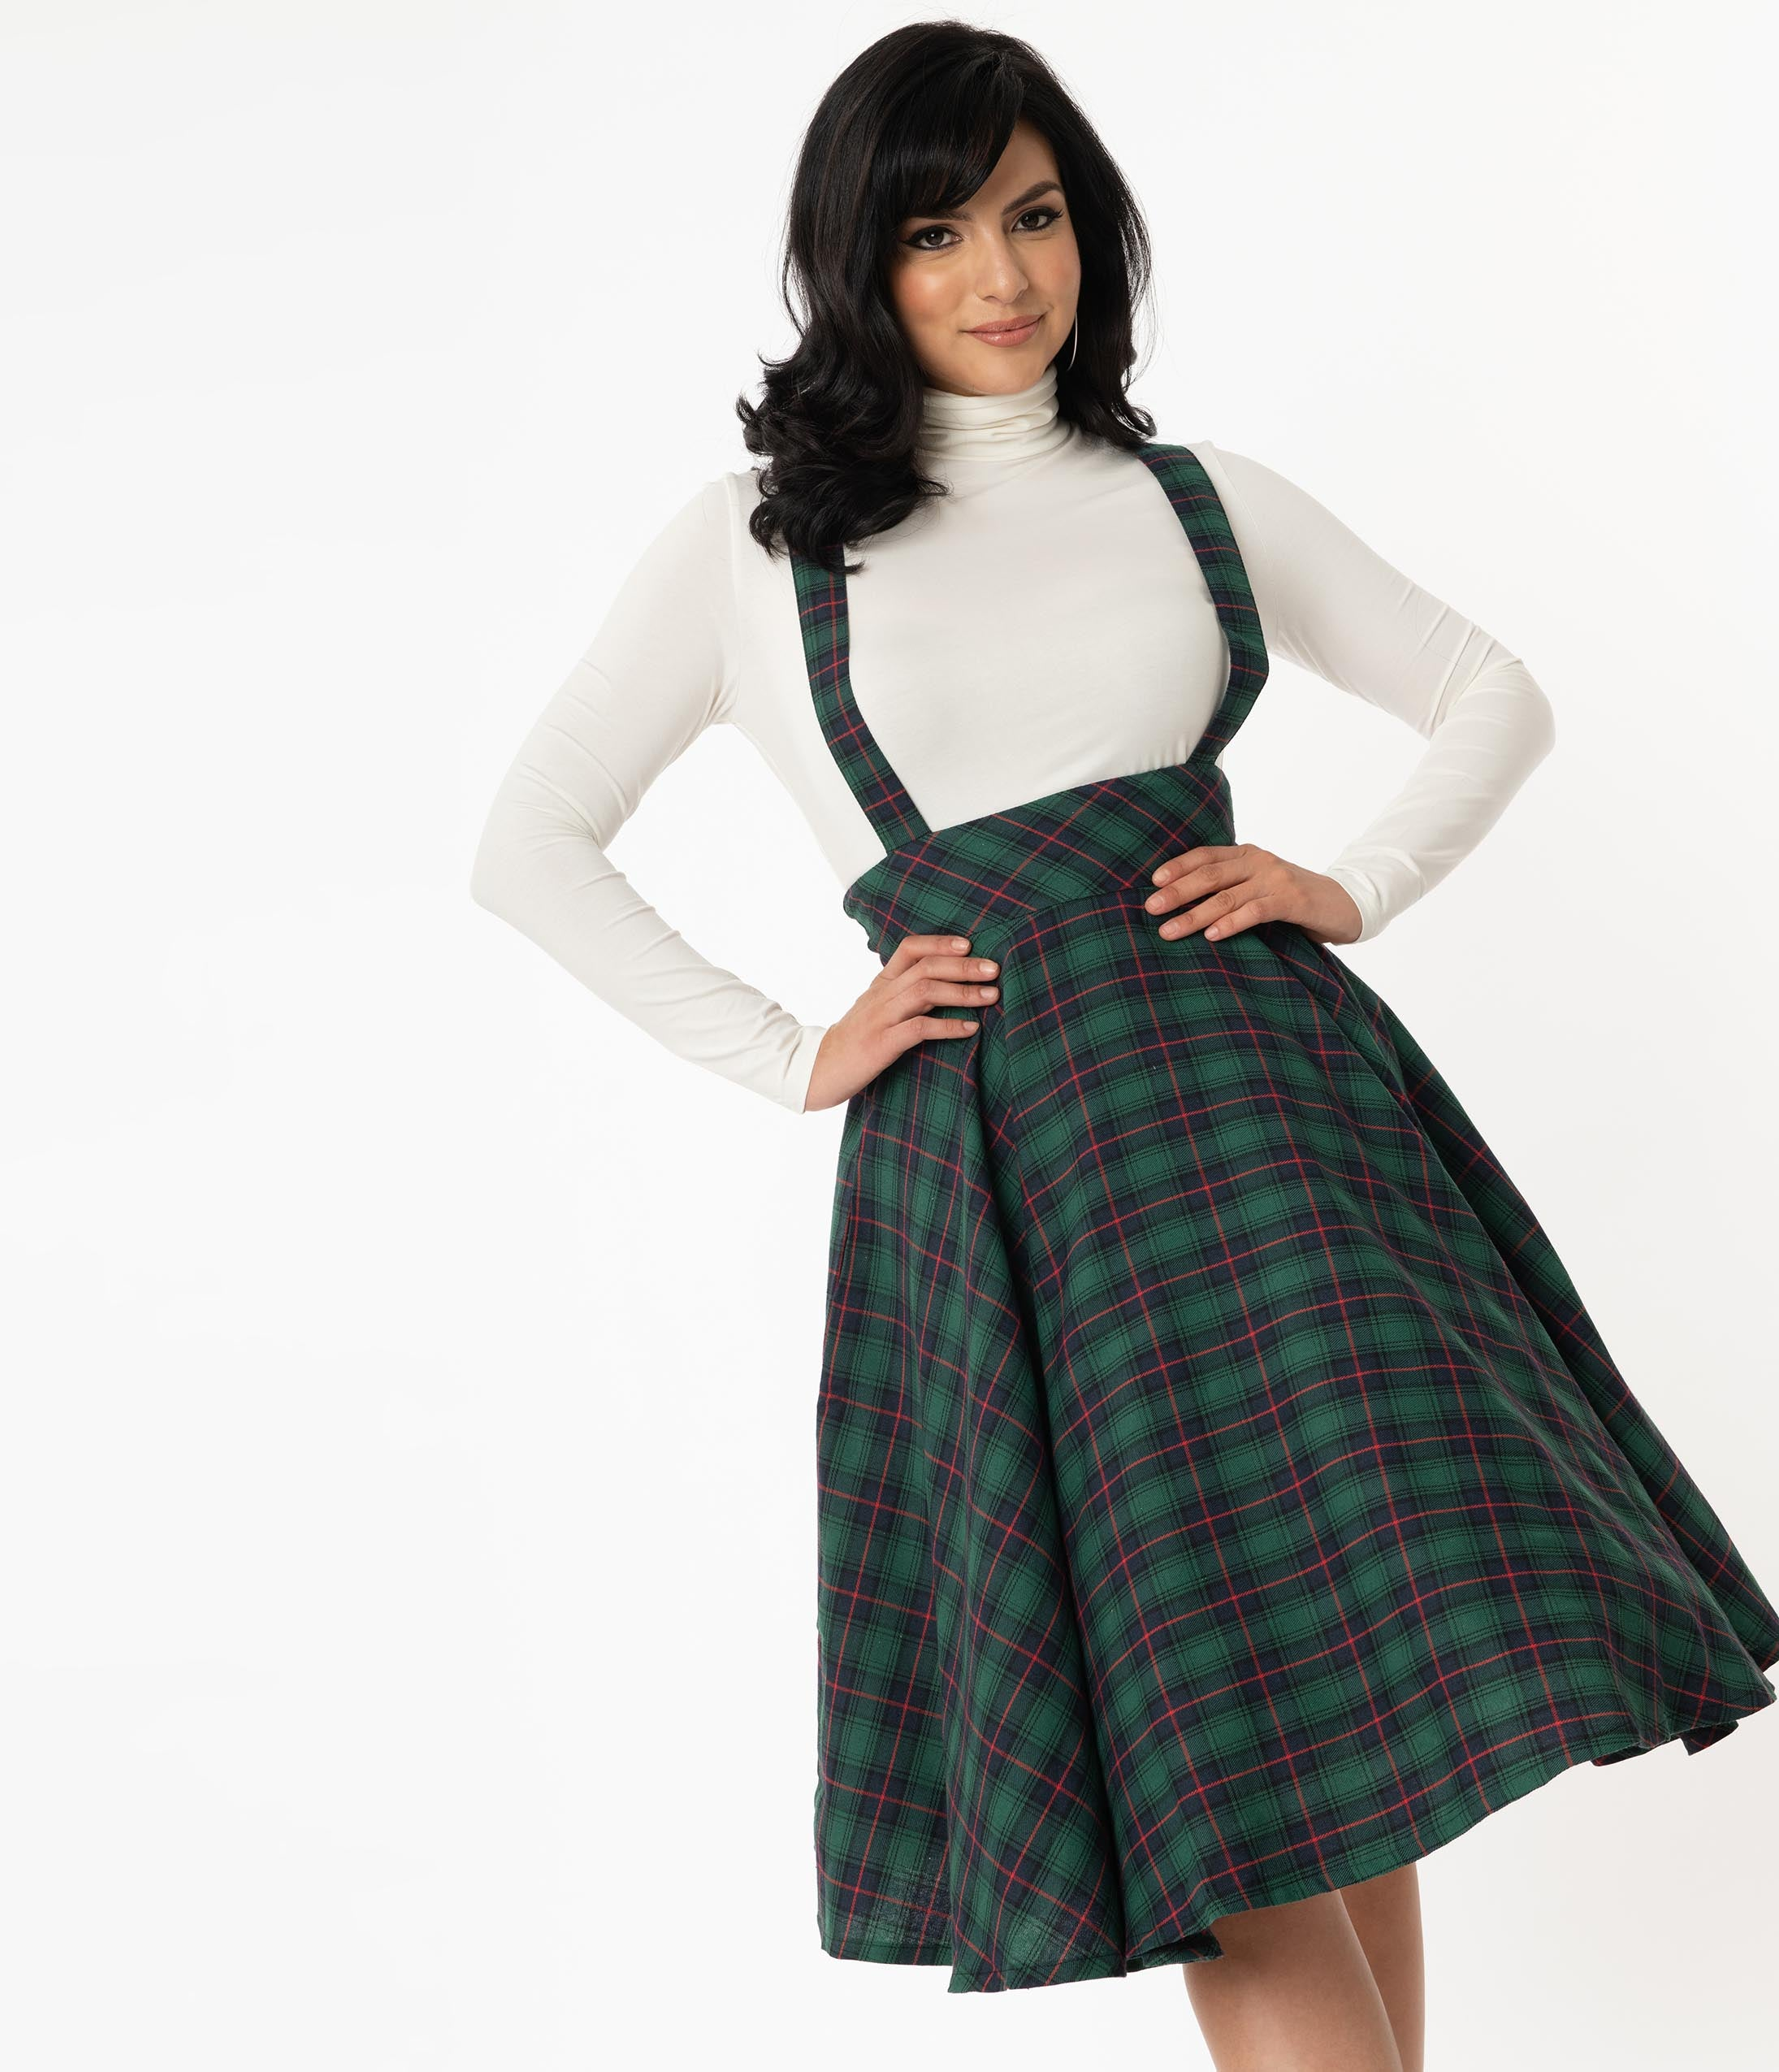 50s Skirt Styles | Poodle Skirts, Circle Skirts, Pencil Skirts 1950s Emerald  Navy Plaid Abby Pinafore Skirt $58.00 AT vintagedancer.com